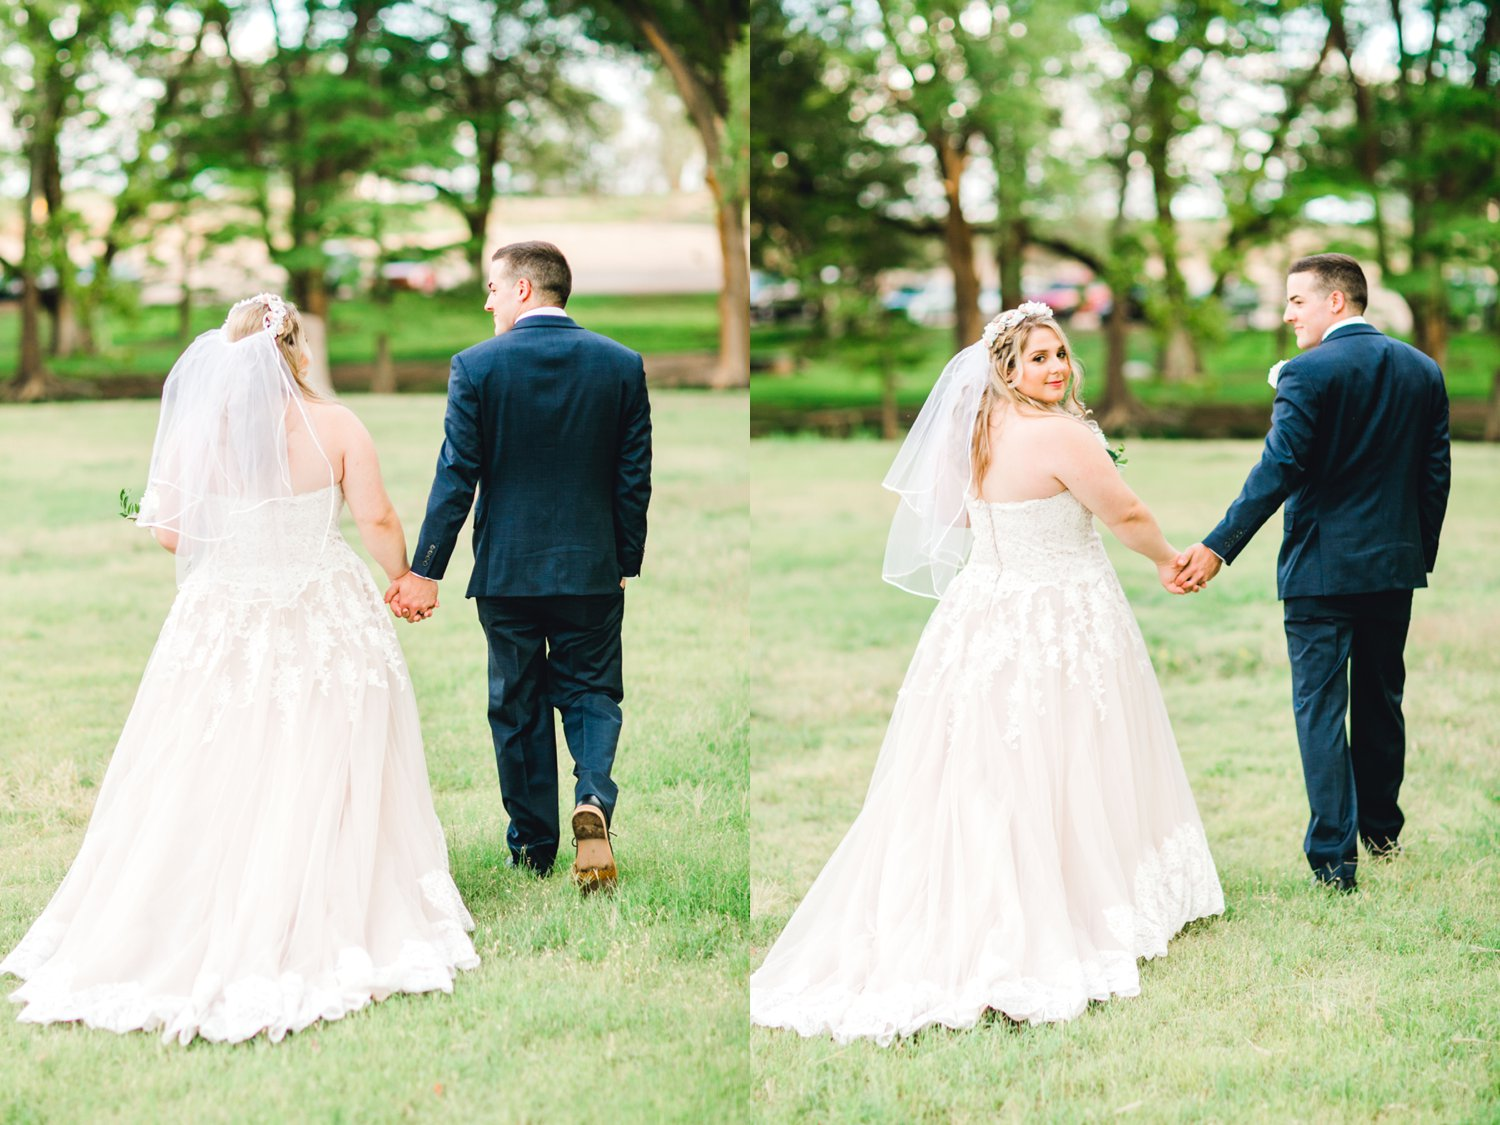 SARAH_AND_GEOFFREY_SHARP_SPIRIT_RANCH_WEDDING_ALLEEJ_LUBBOCK_TX_0101.jpg